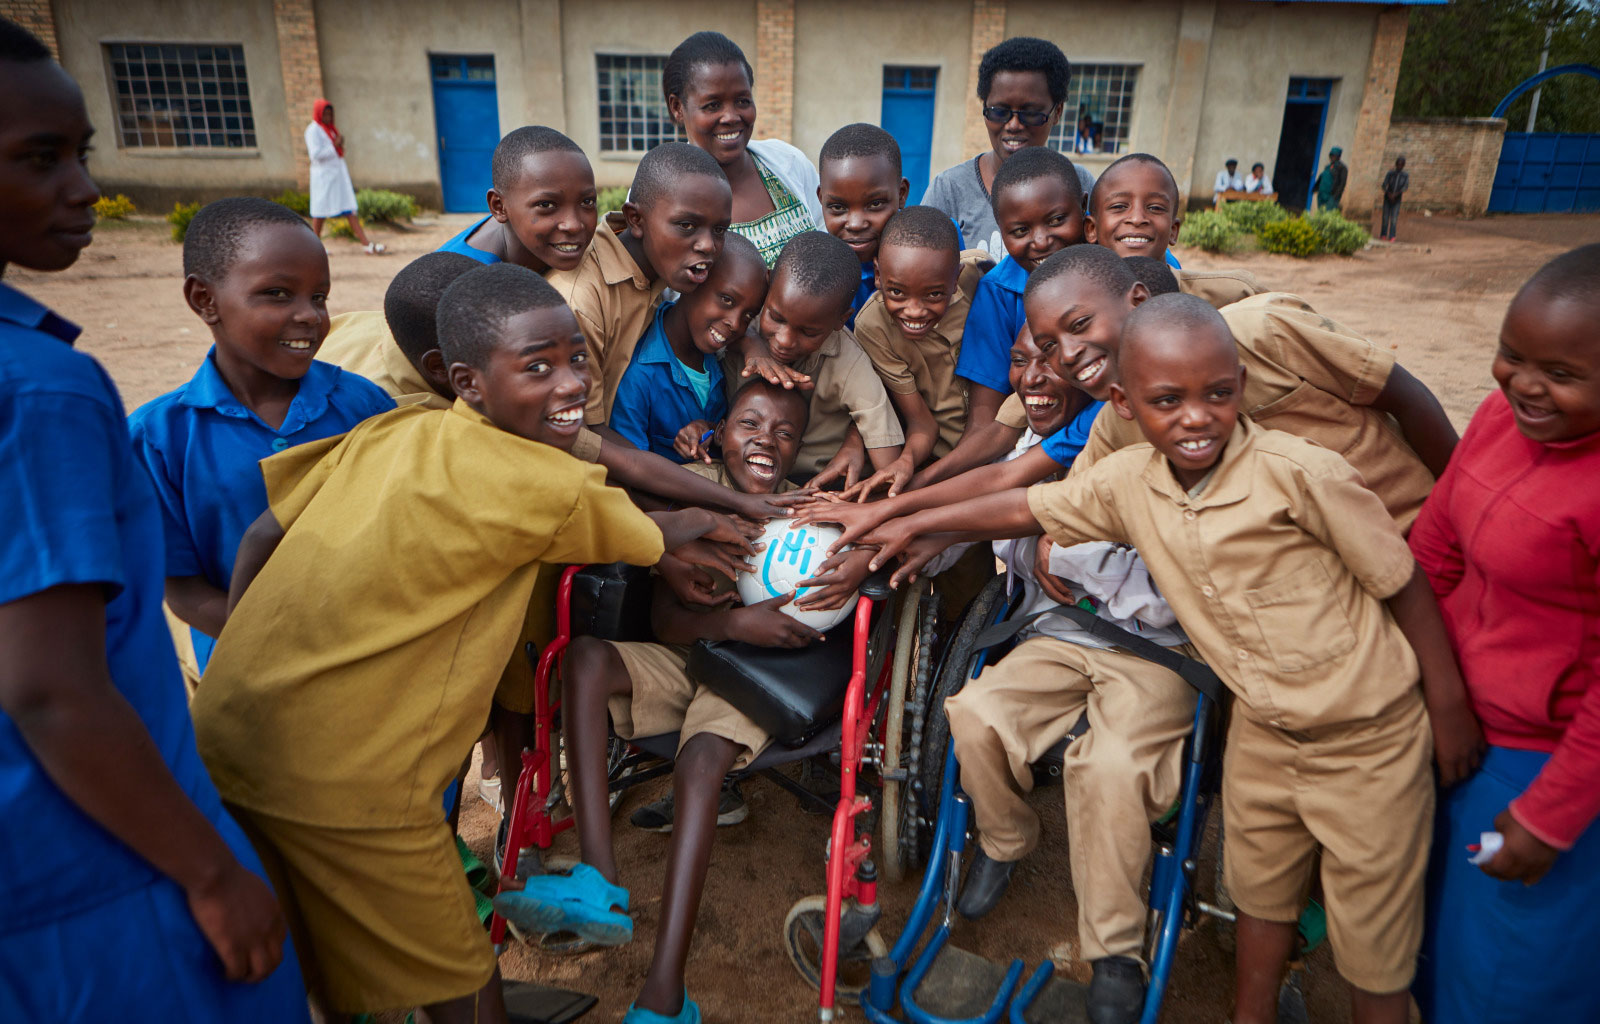 c_Neil-Thomas_HI__Emmanuel_-16_-who-has-cerebral-palsy_-holds-a-soccer-ball-and-is-surrounded-by-friends-at-a-school-in-Rwanda.jpg